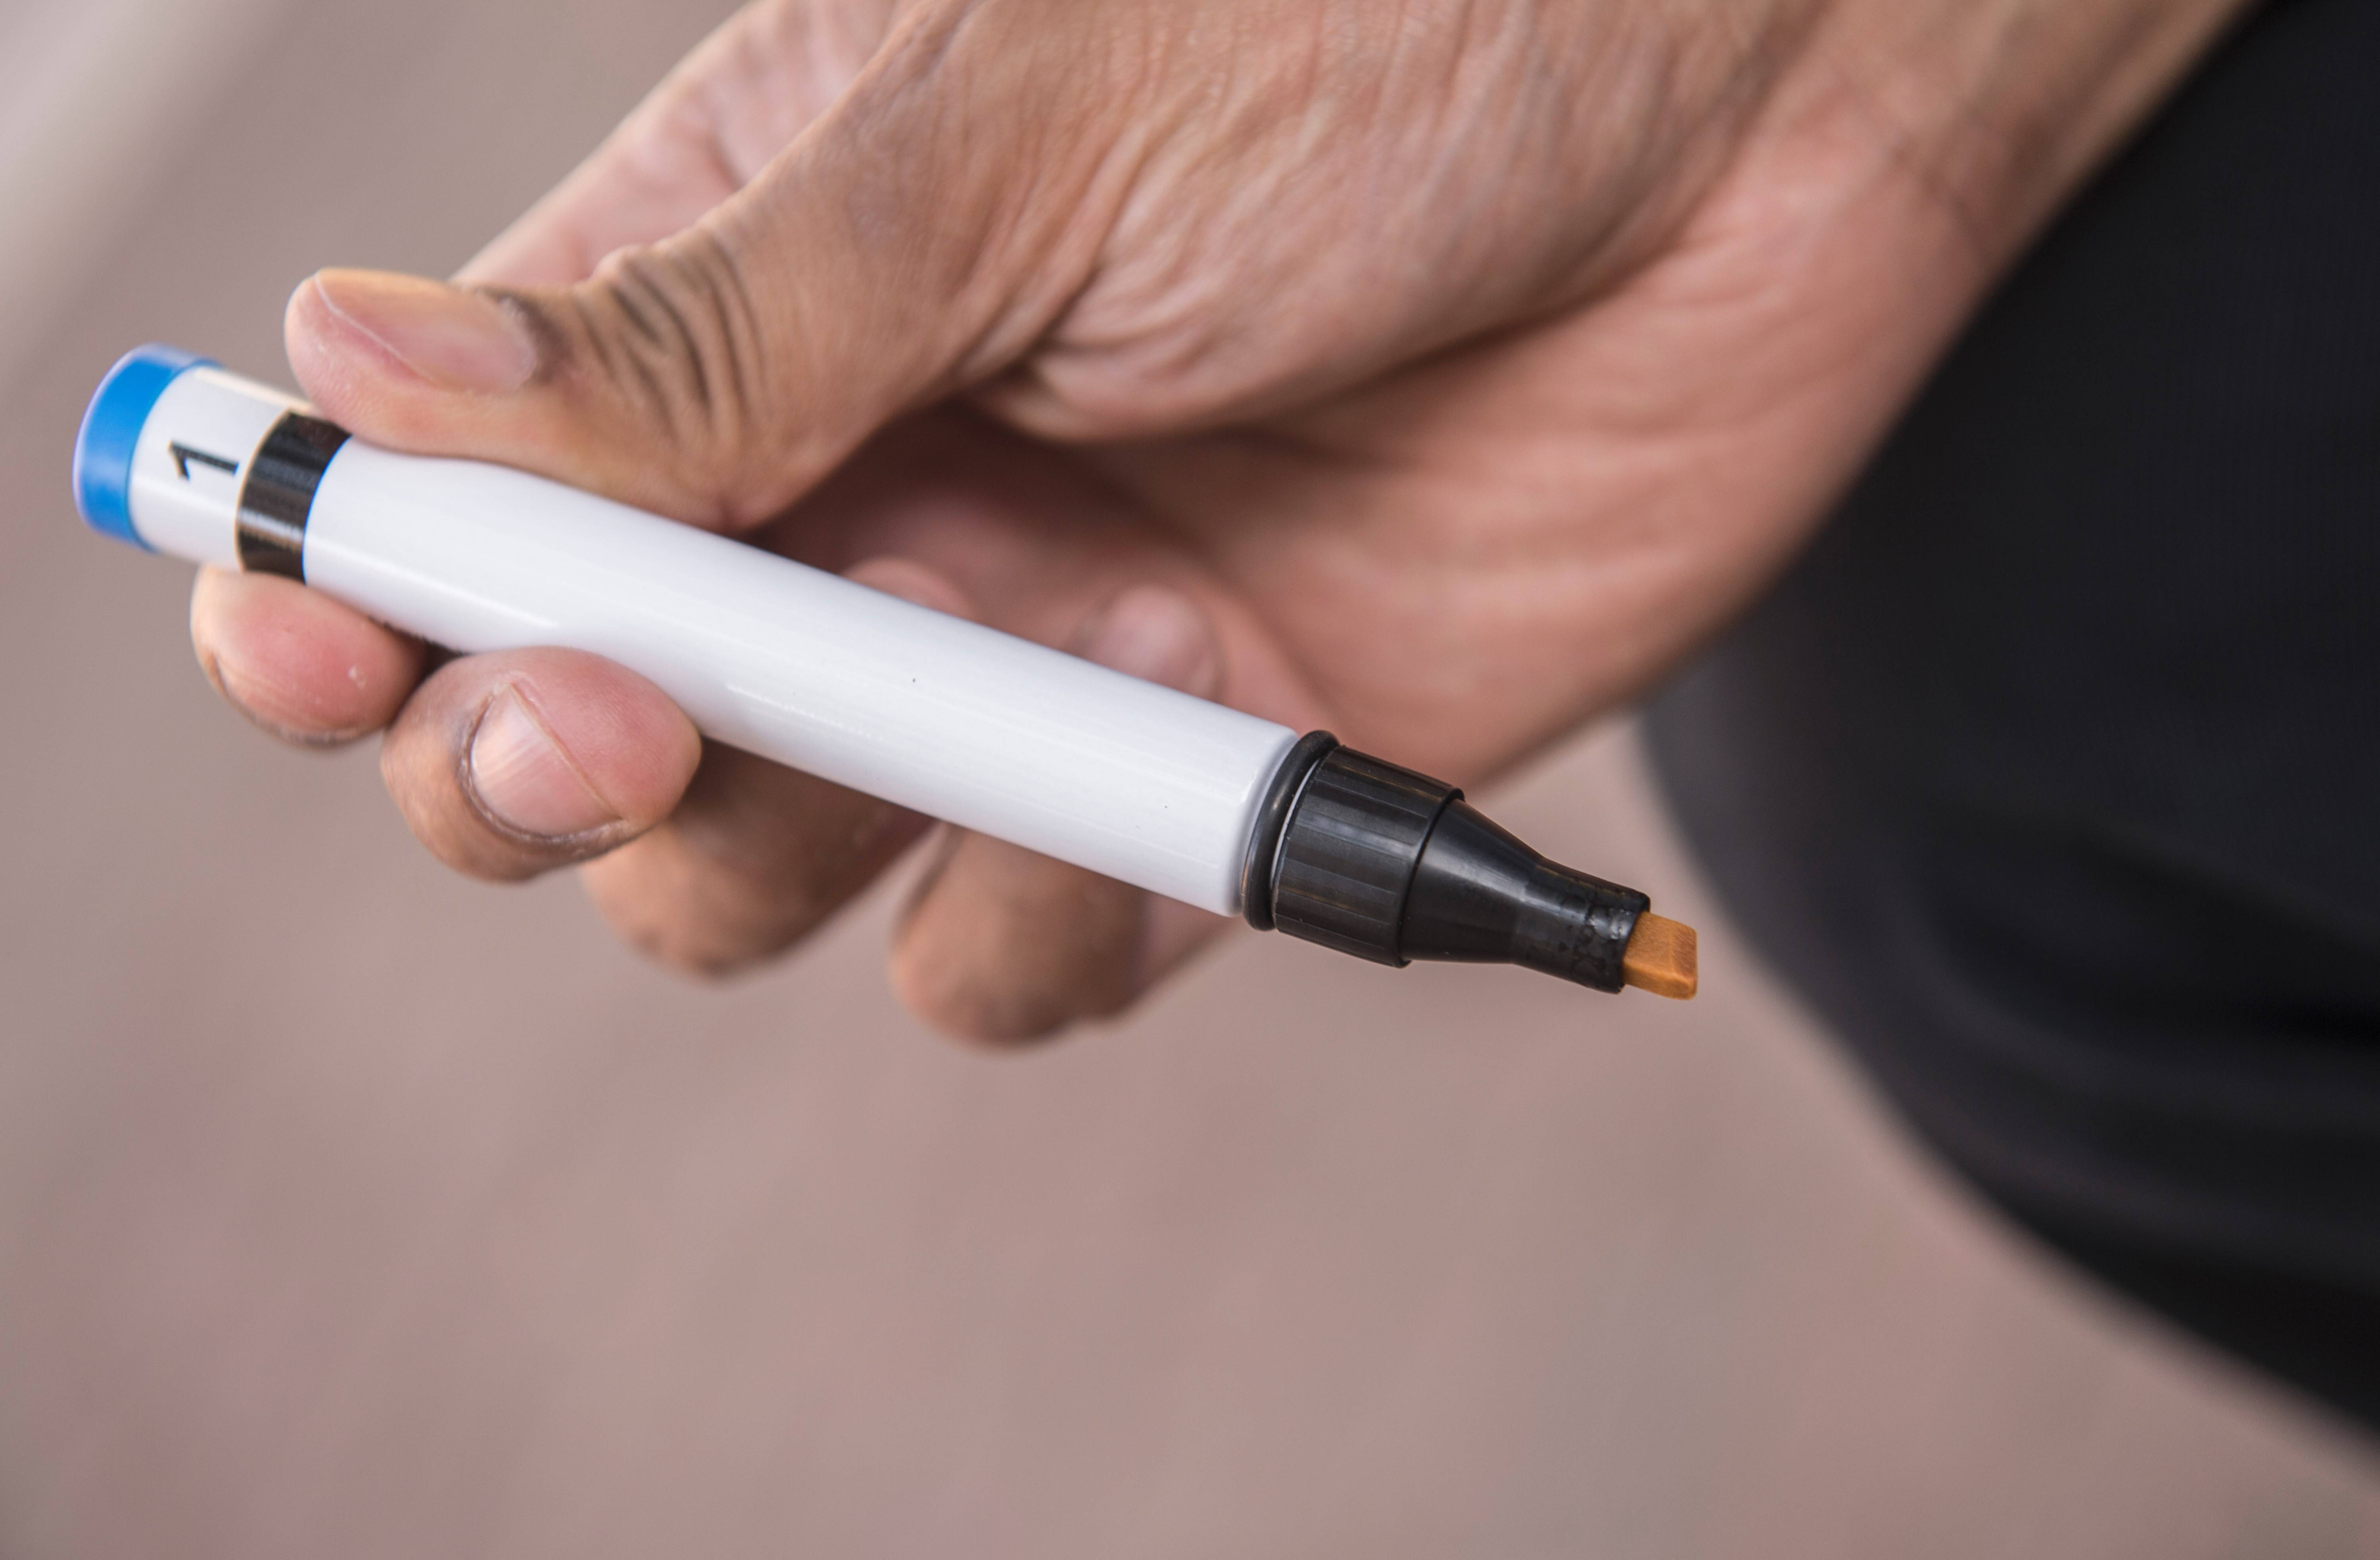 It resembles a felt marker, but one of these Sniffin' Sticks could predict your death. A University of Chicago study found that older people with diminished senses of smell are far more likely to die than peers with healthy senses of smell.